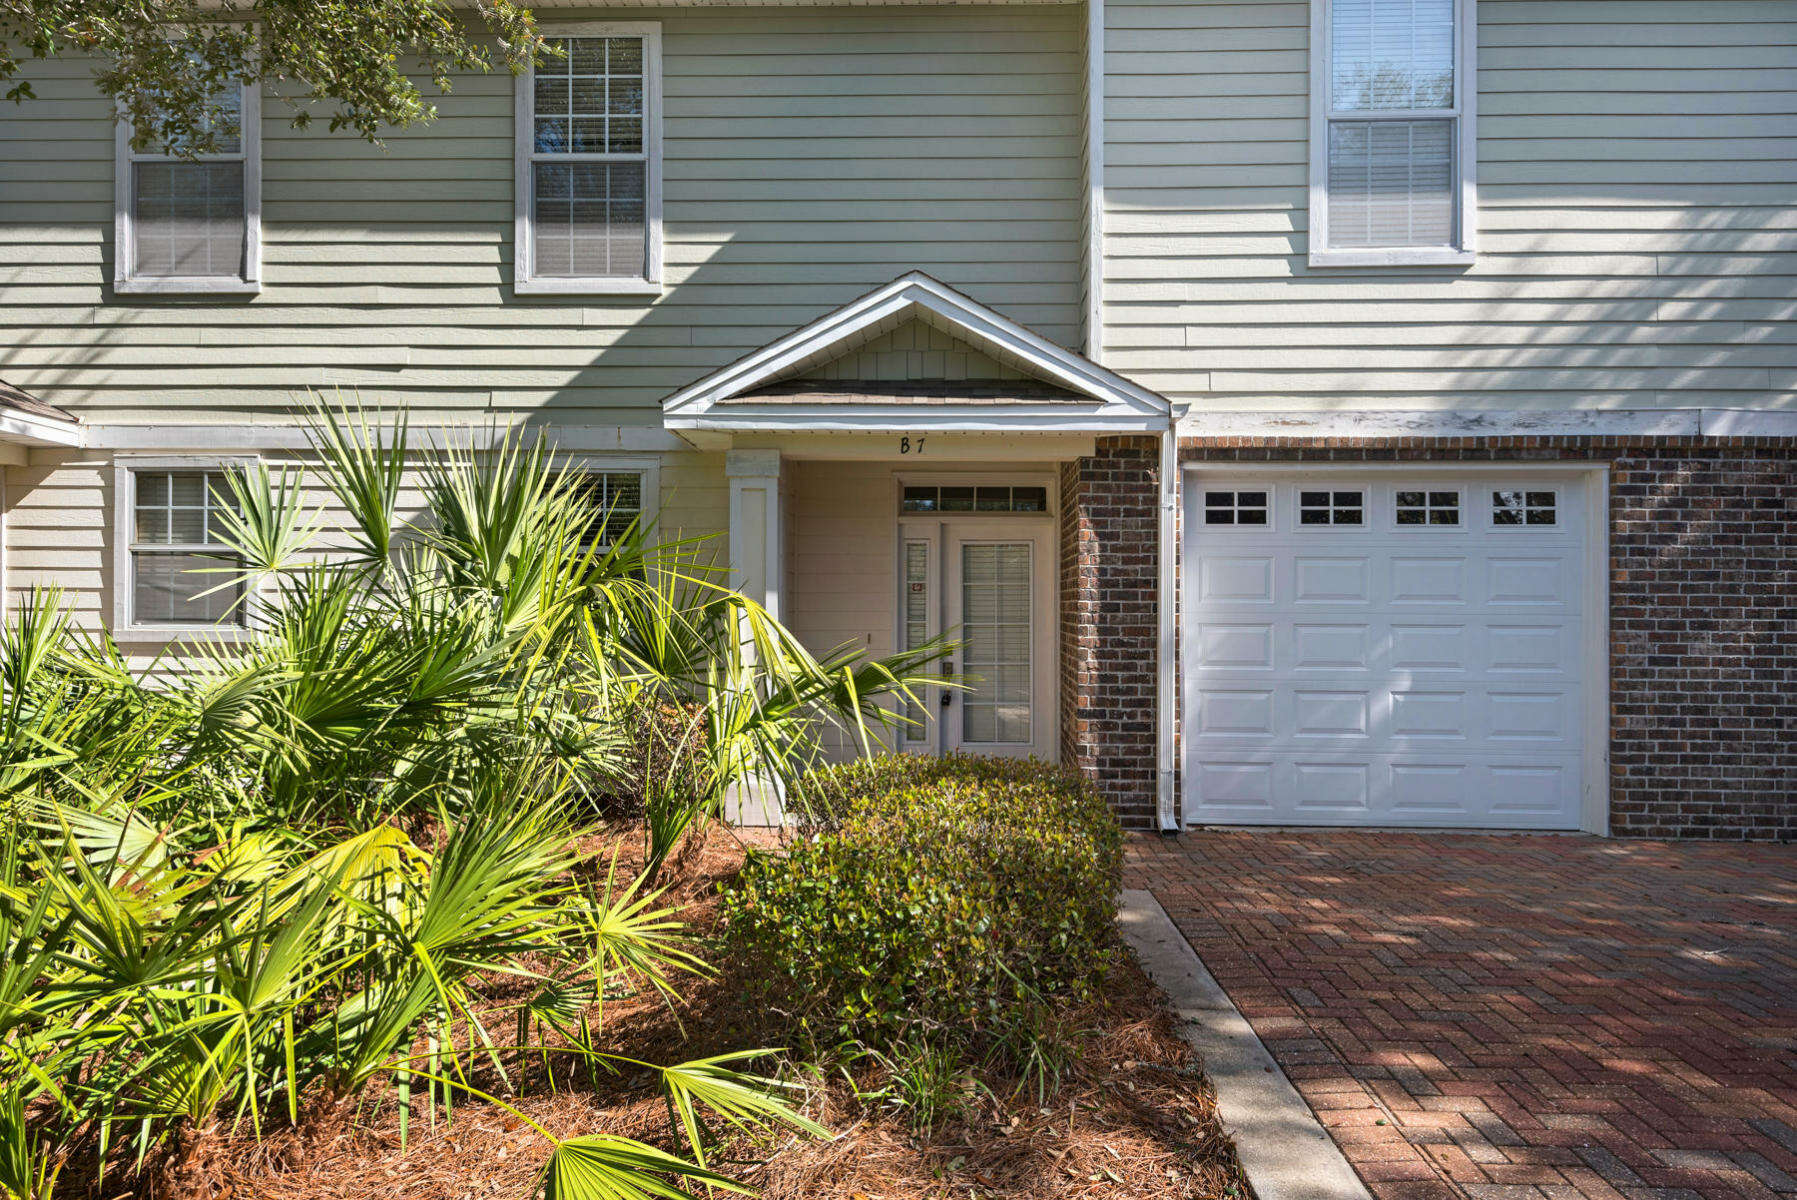 Income Property for Sale at 139 Siebert Avenue Destin, Florida 32541 United States